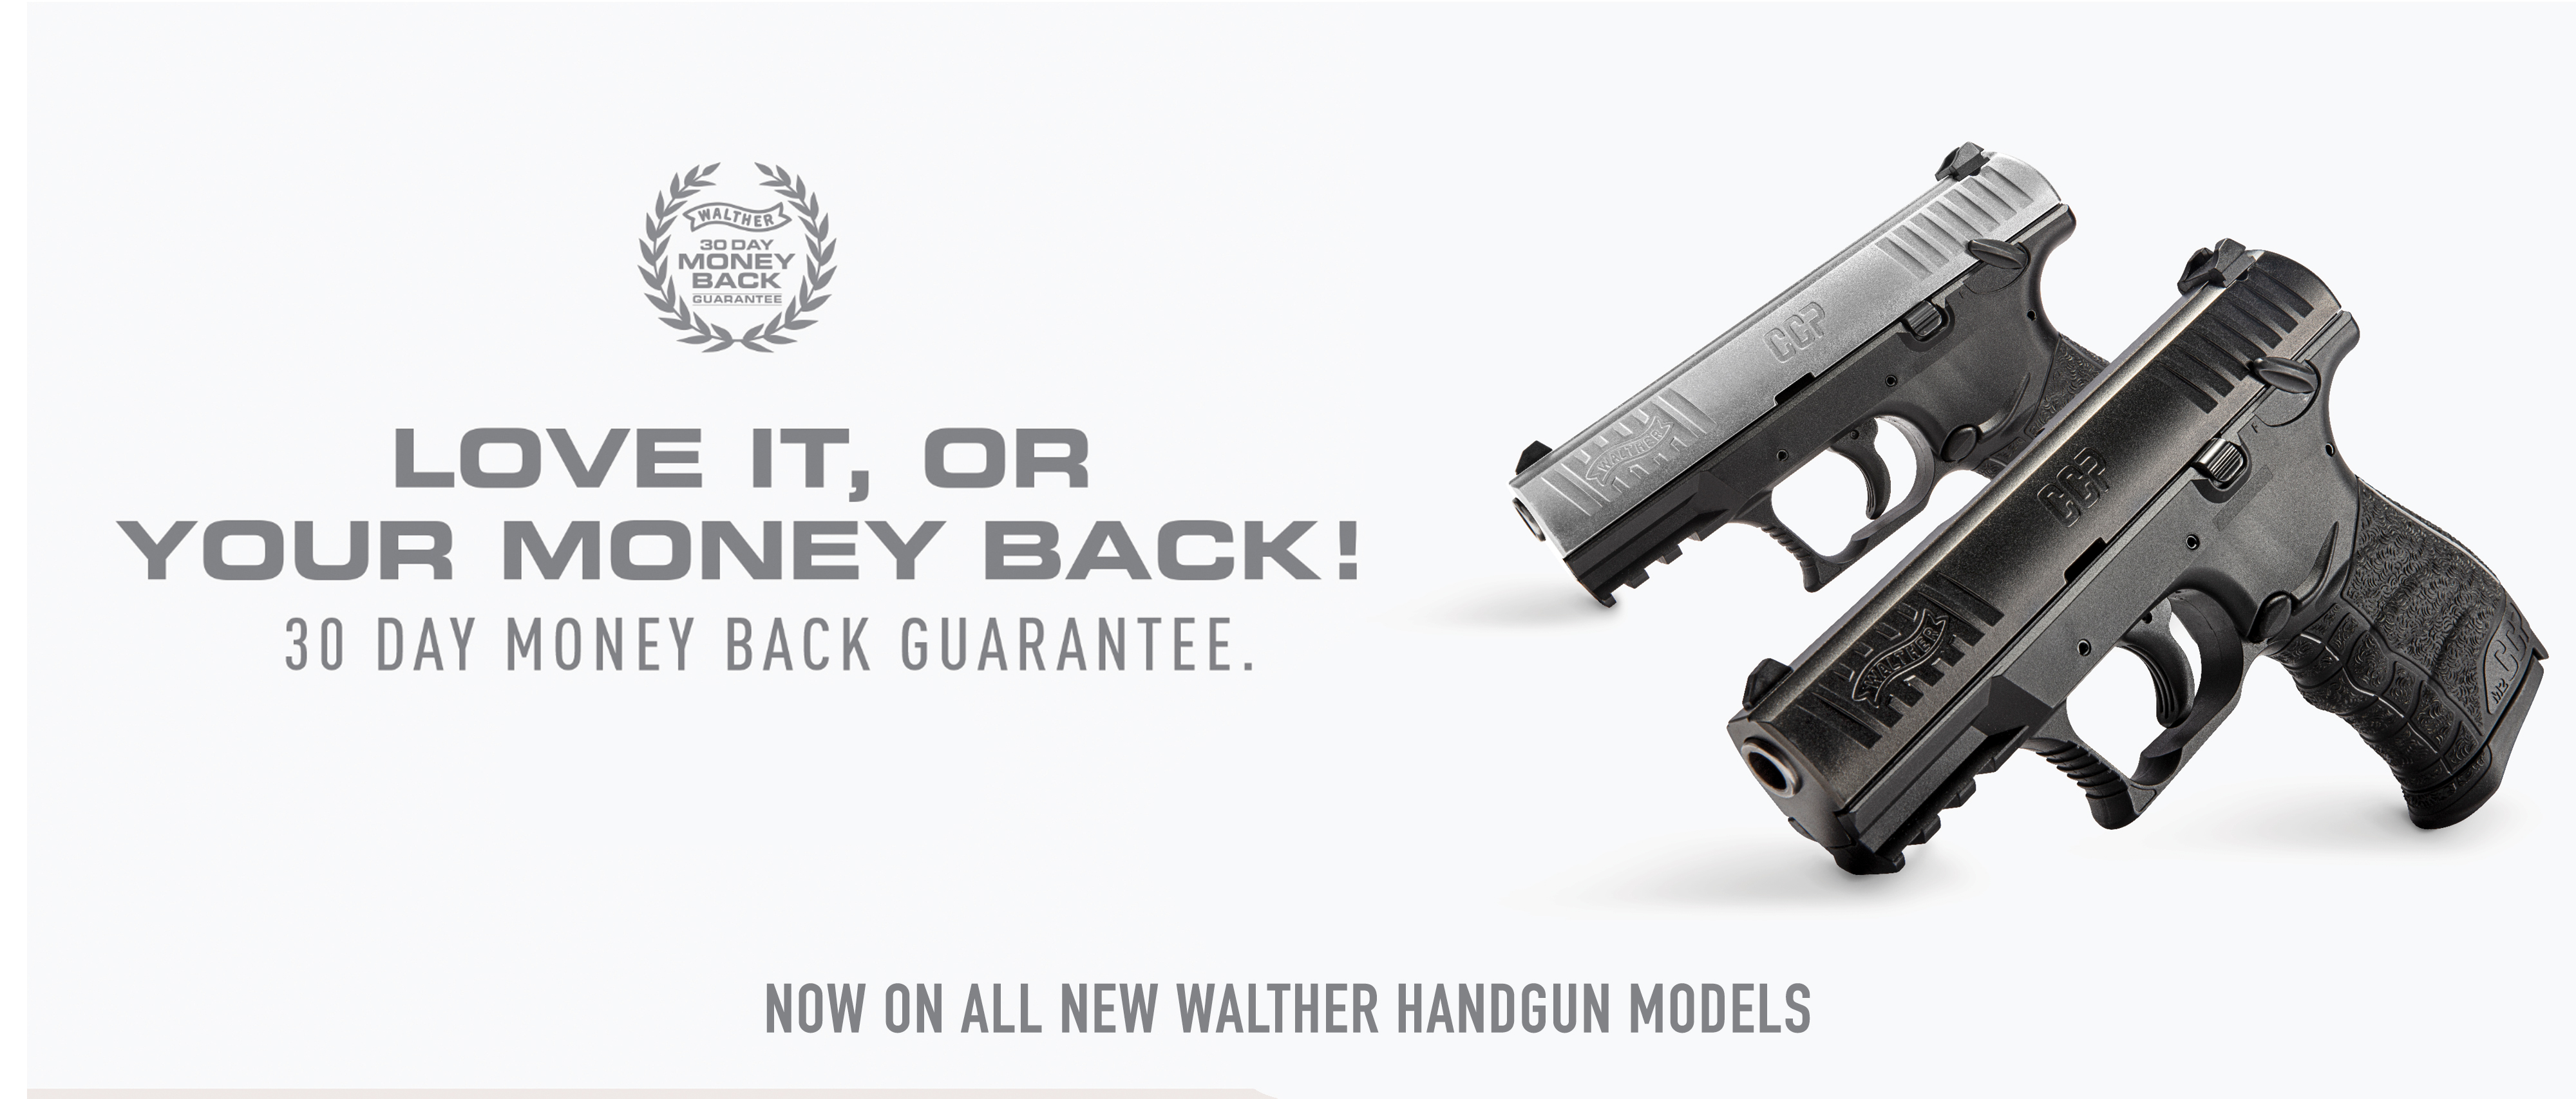 Walther Love it or your money back